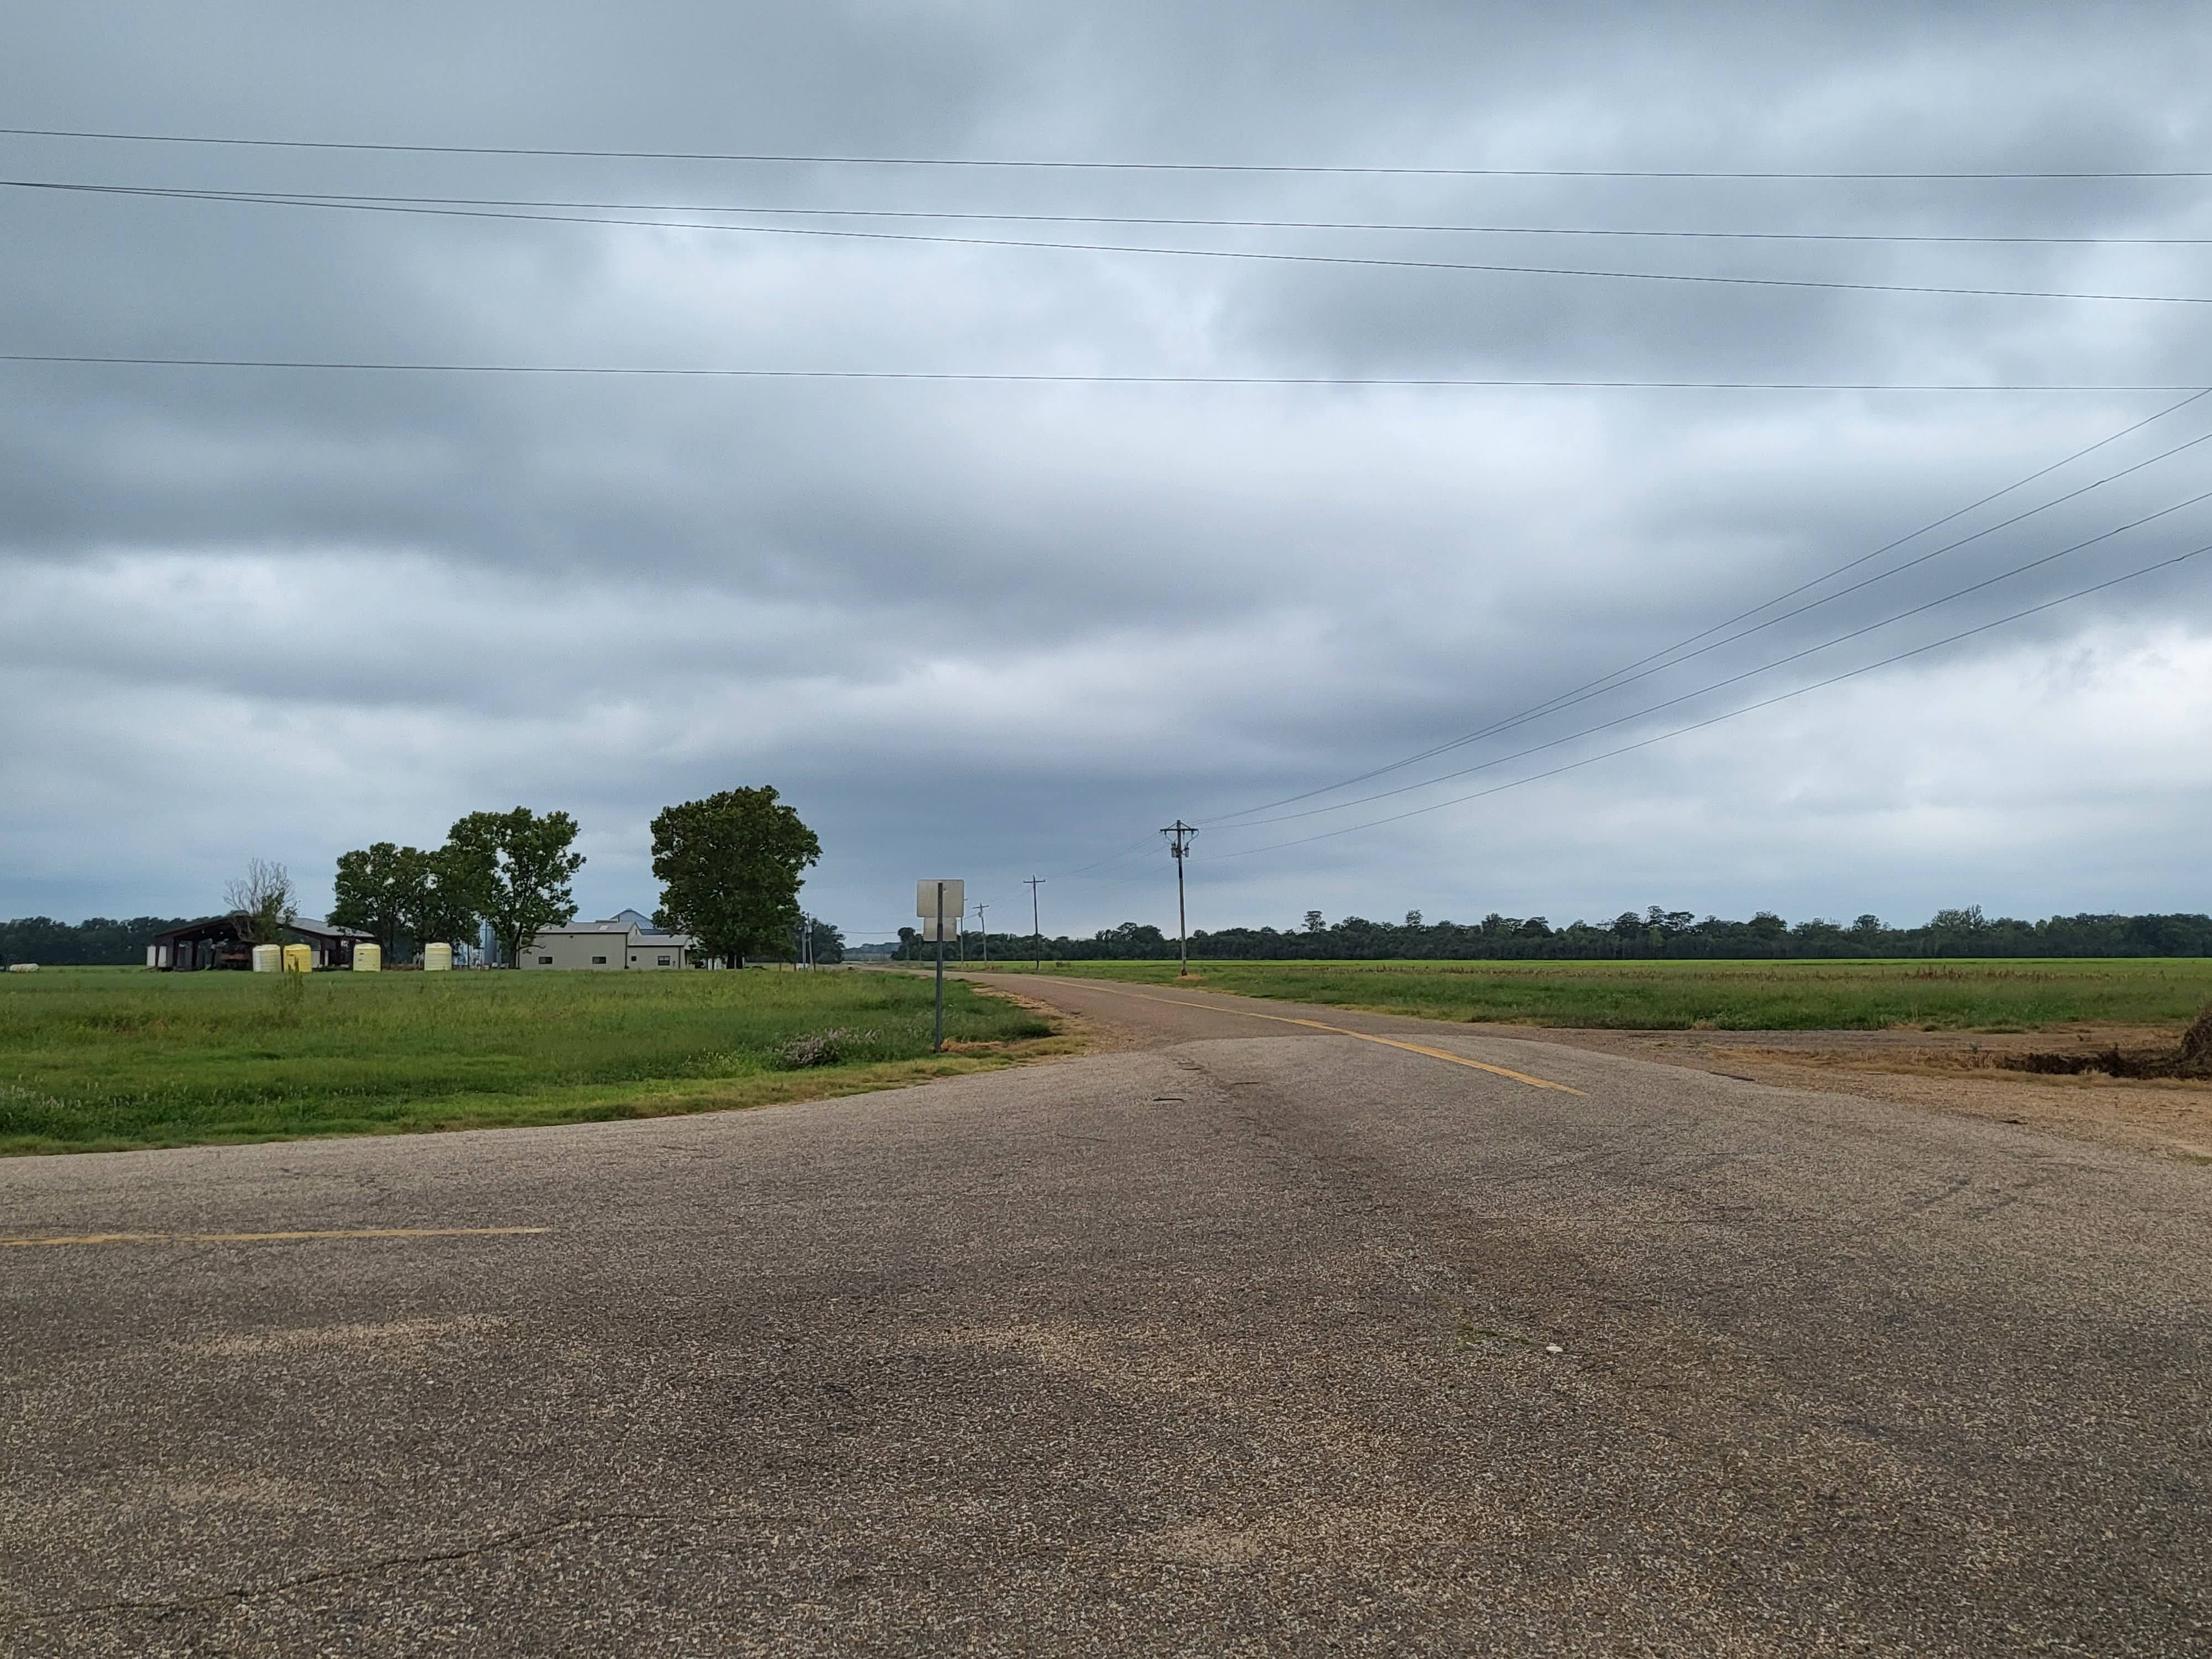 A landscape shot with a road and open sky